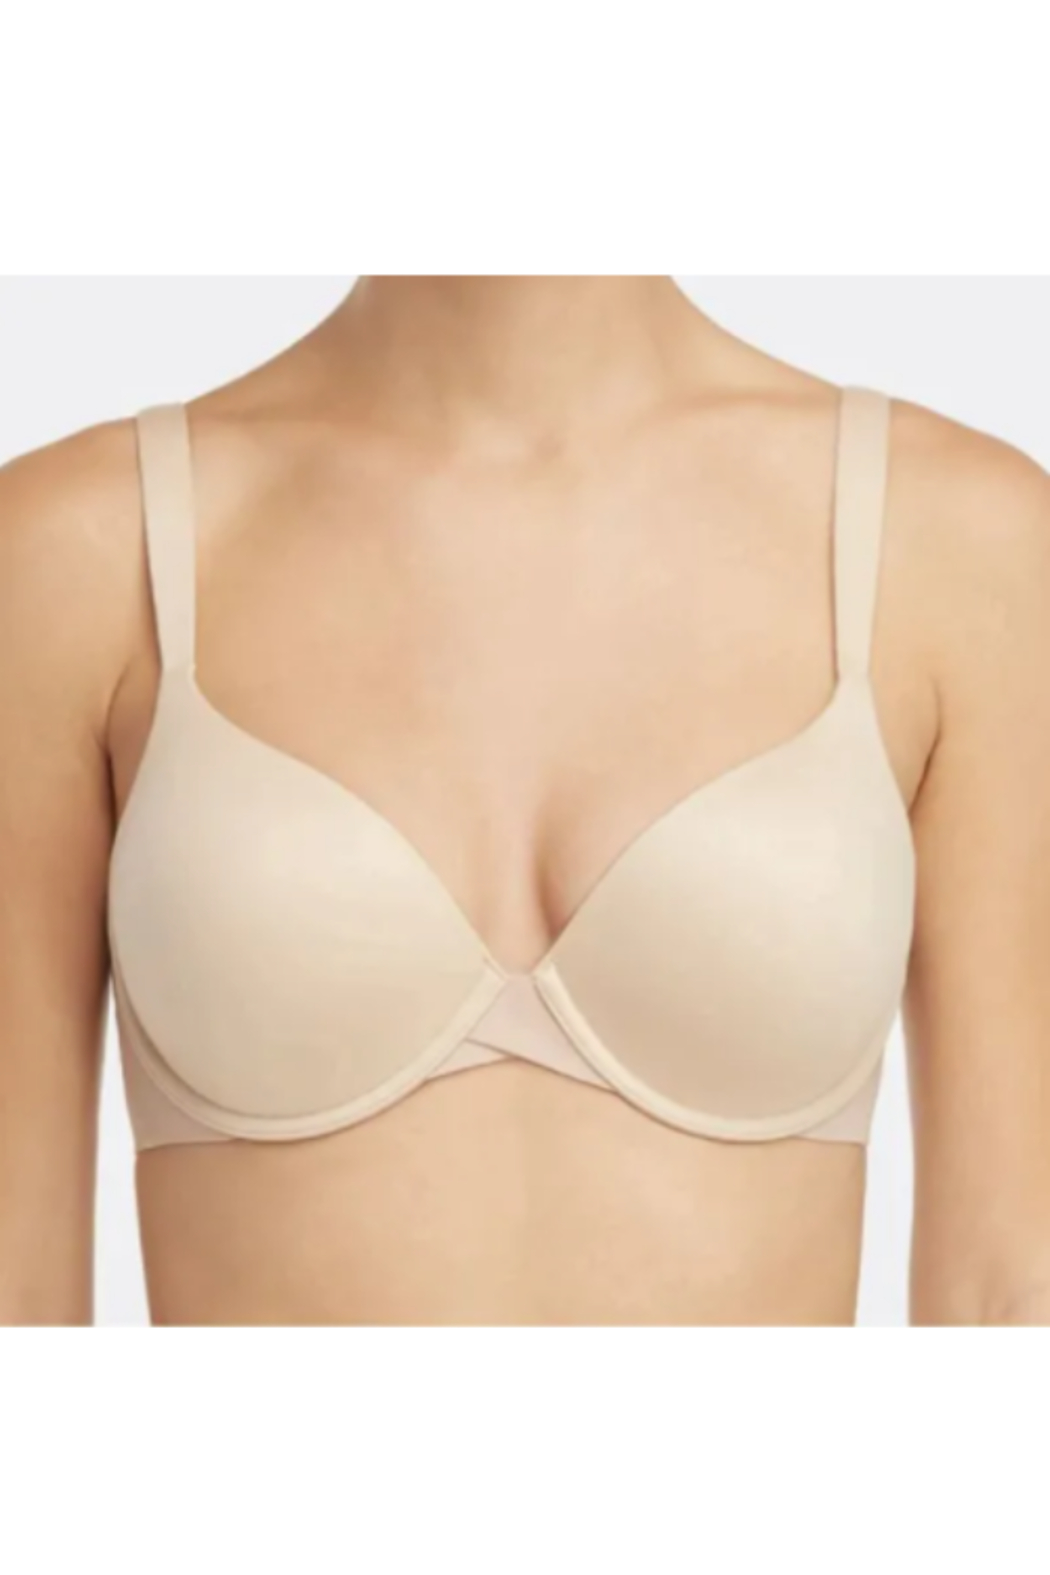 Spanx Signature Pillow Cup Full Coverage Bra - Main Image